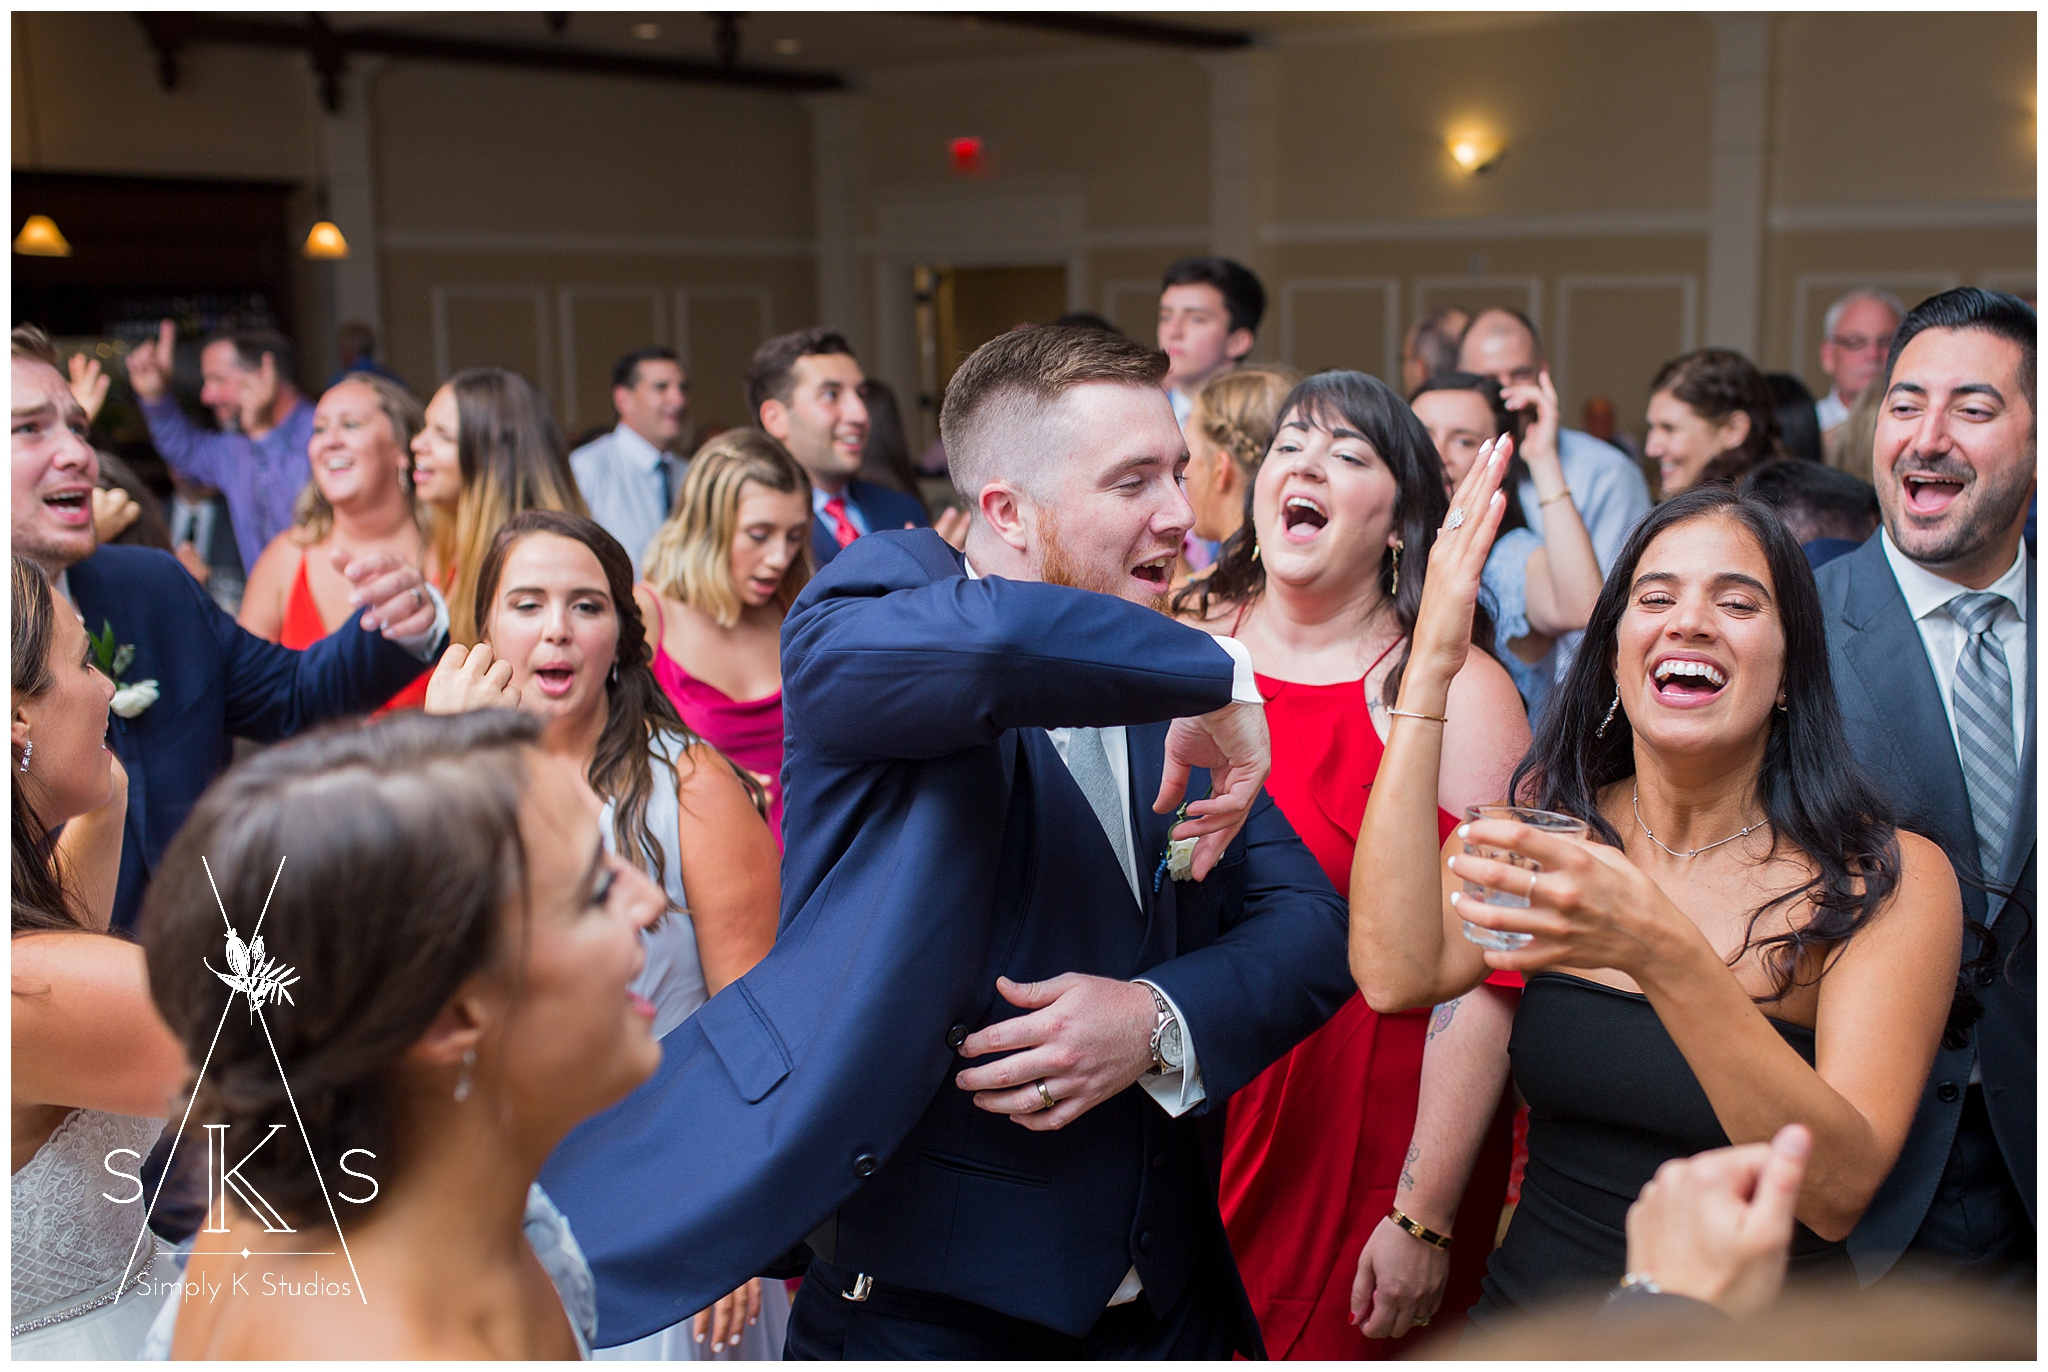 119 Dancing at a Wedding.jpg